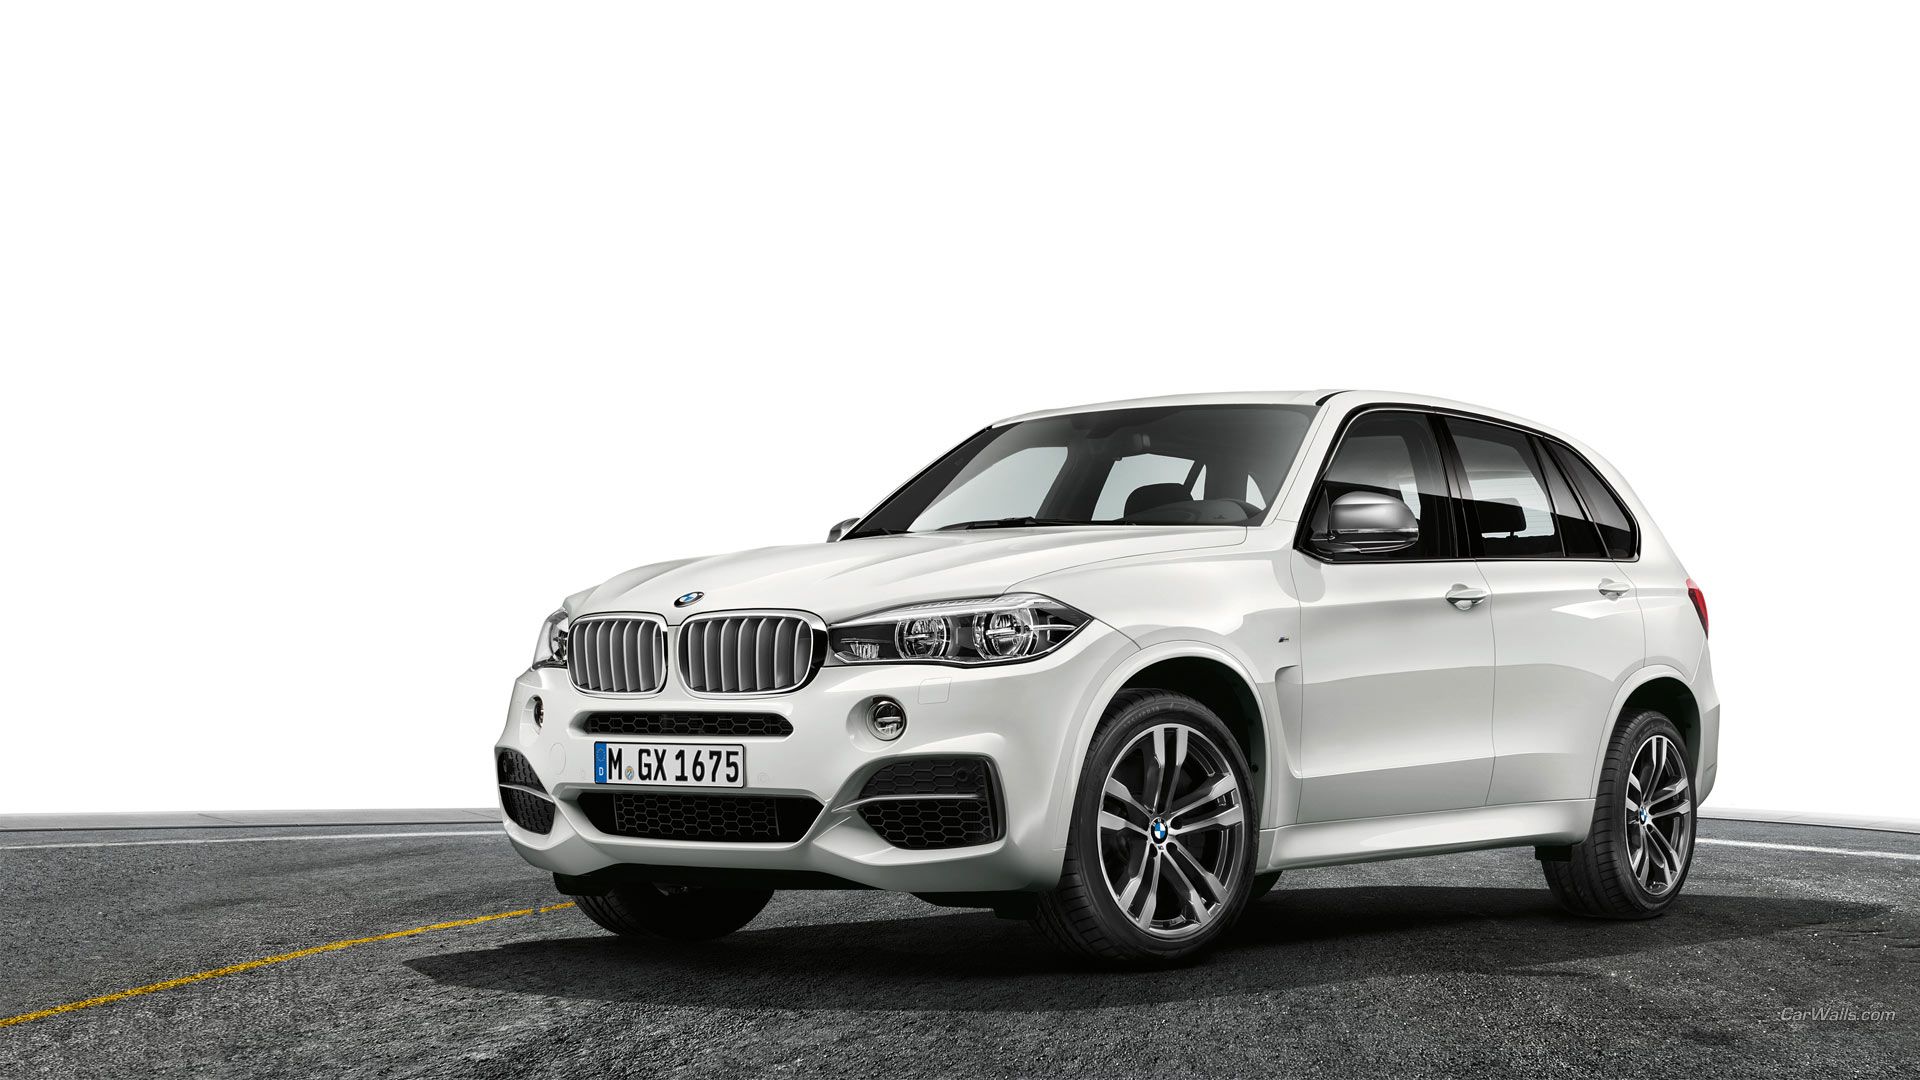 2014 bmw x5 m50d full hd wallpaper and background image 1920x1080 vehicles 2014 bmw x5 m50d wallpaper voltagebd Gallery